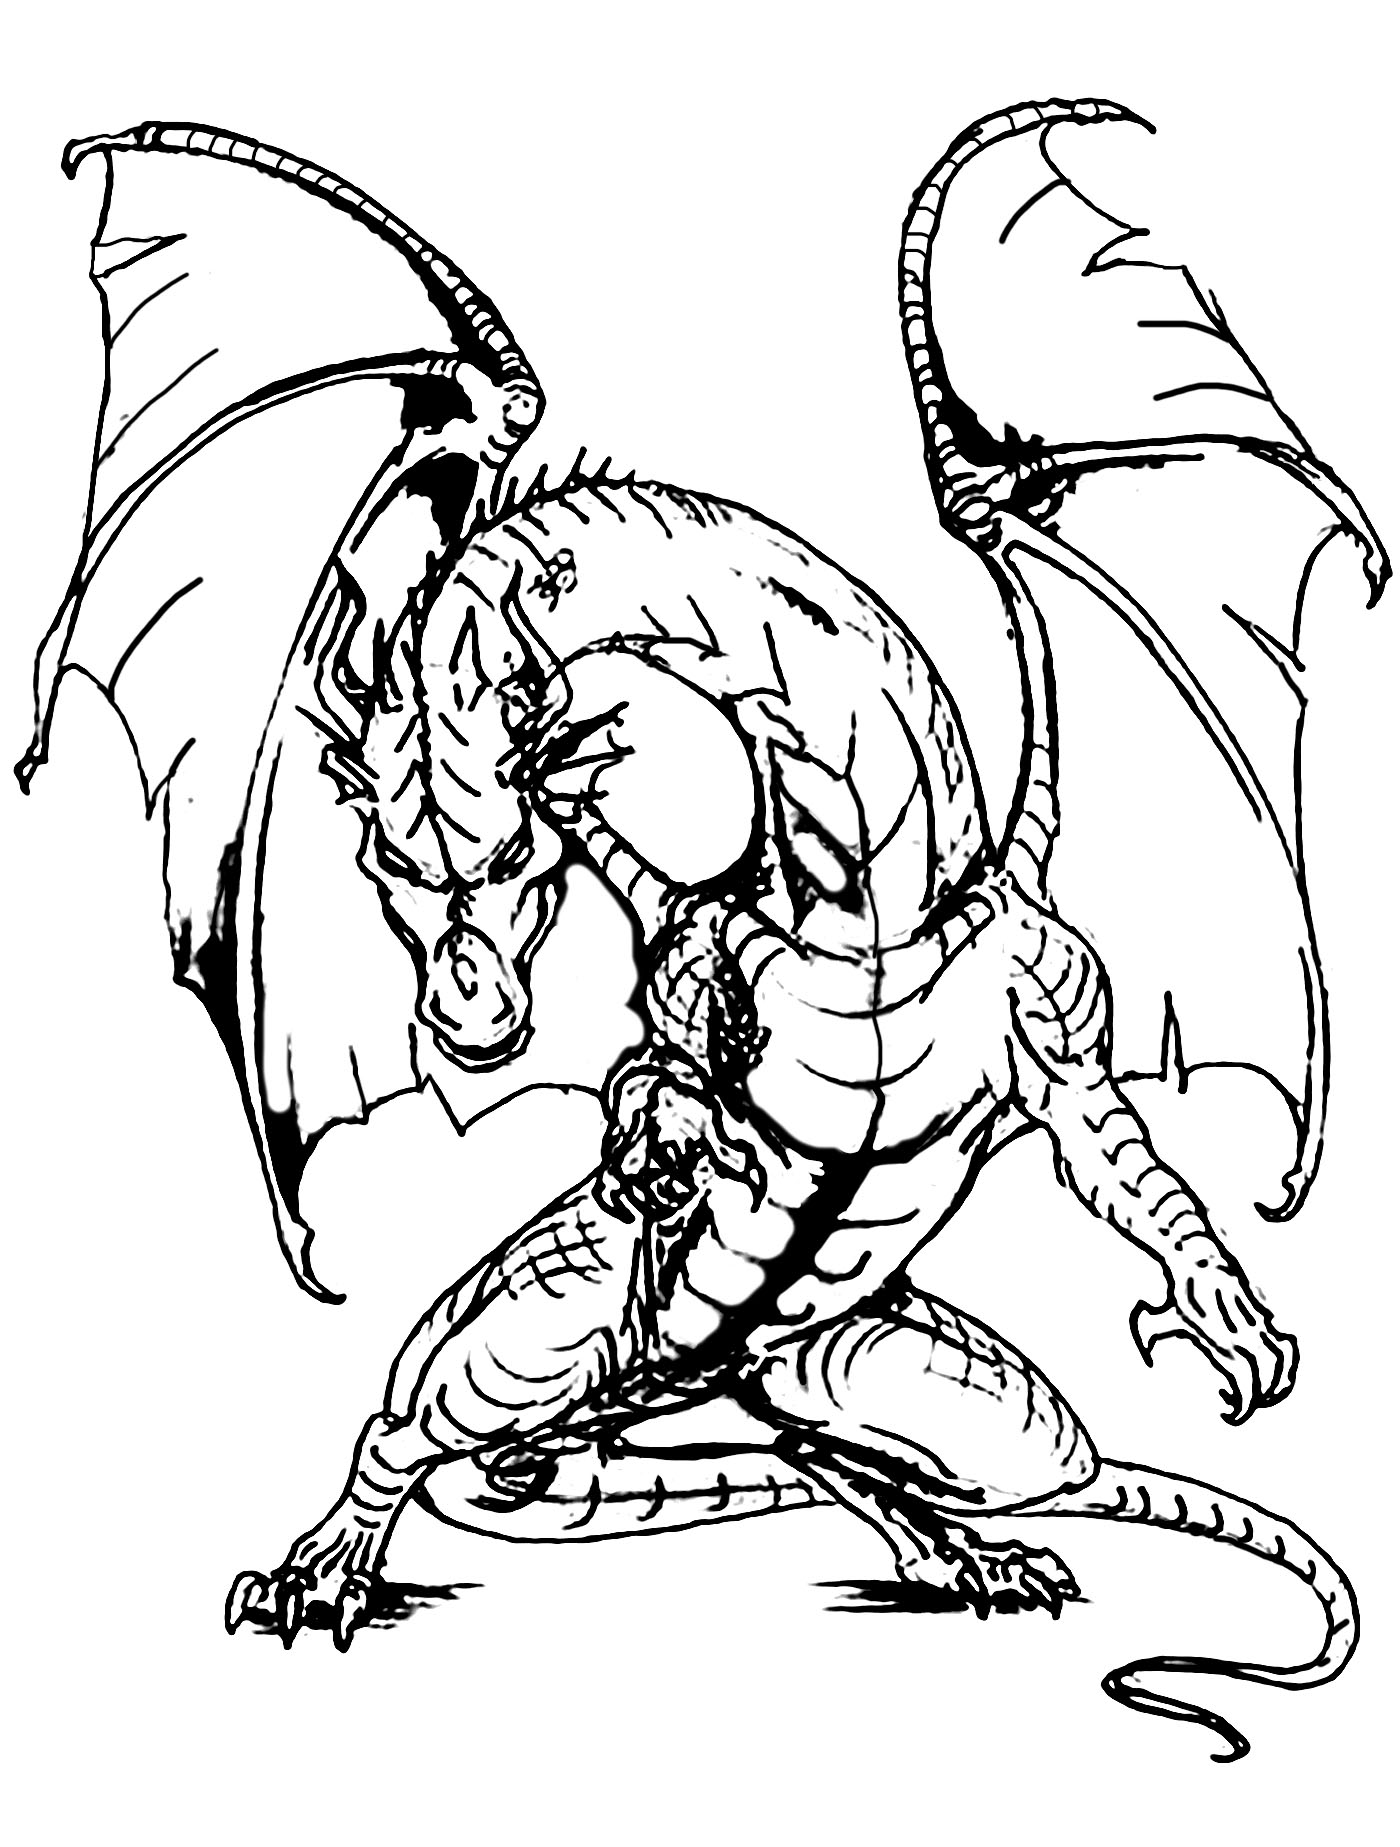 images of dragons to color dragon coloring pages printable color images of to dragons